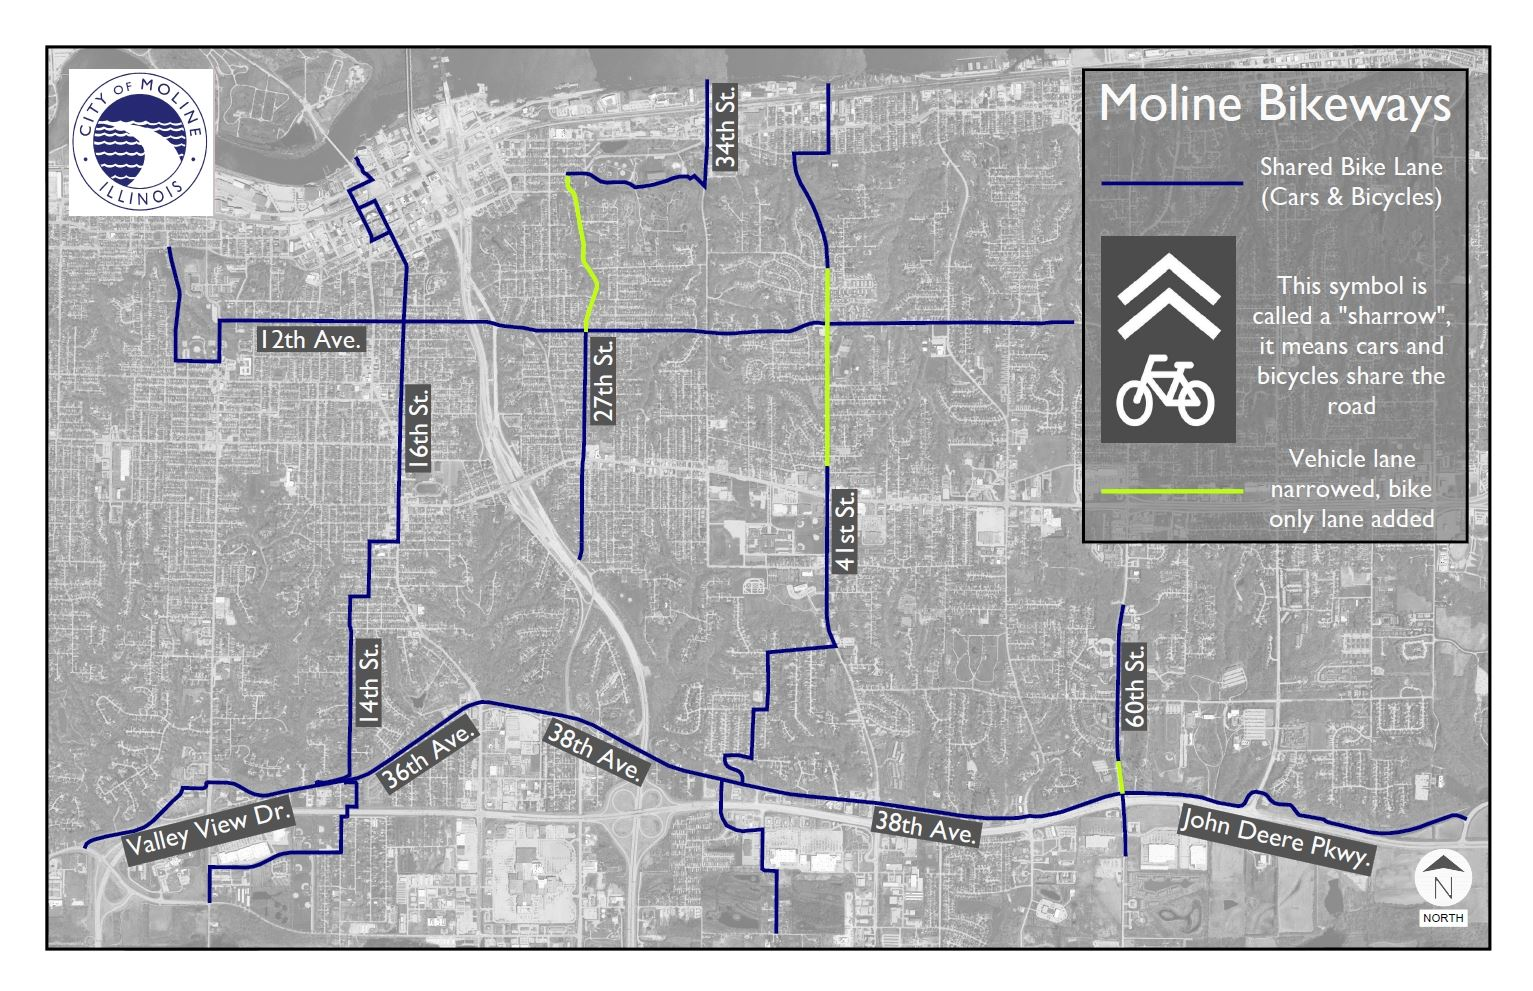 Moline Bikeways Map